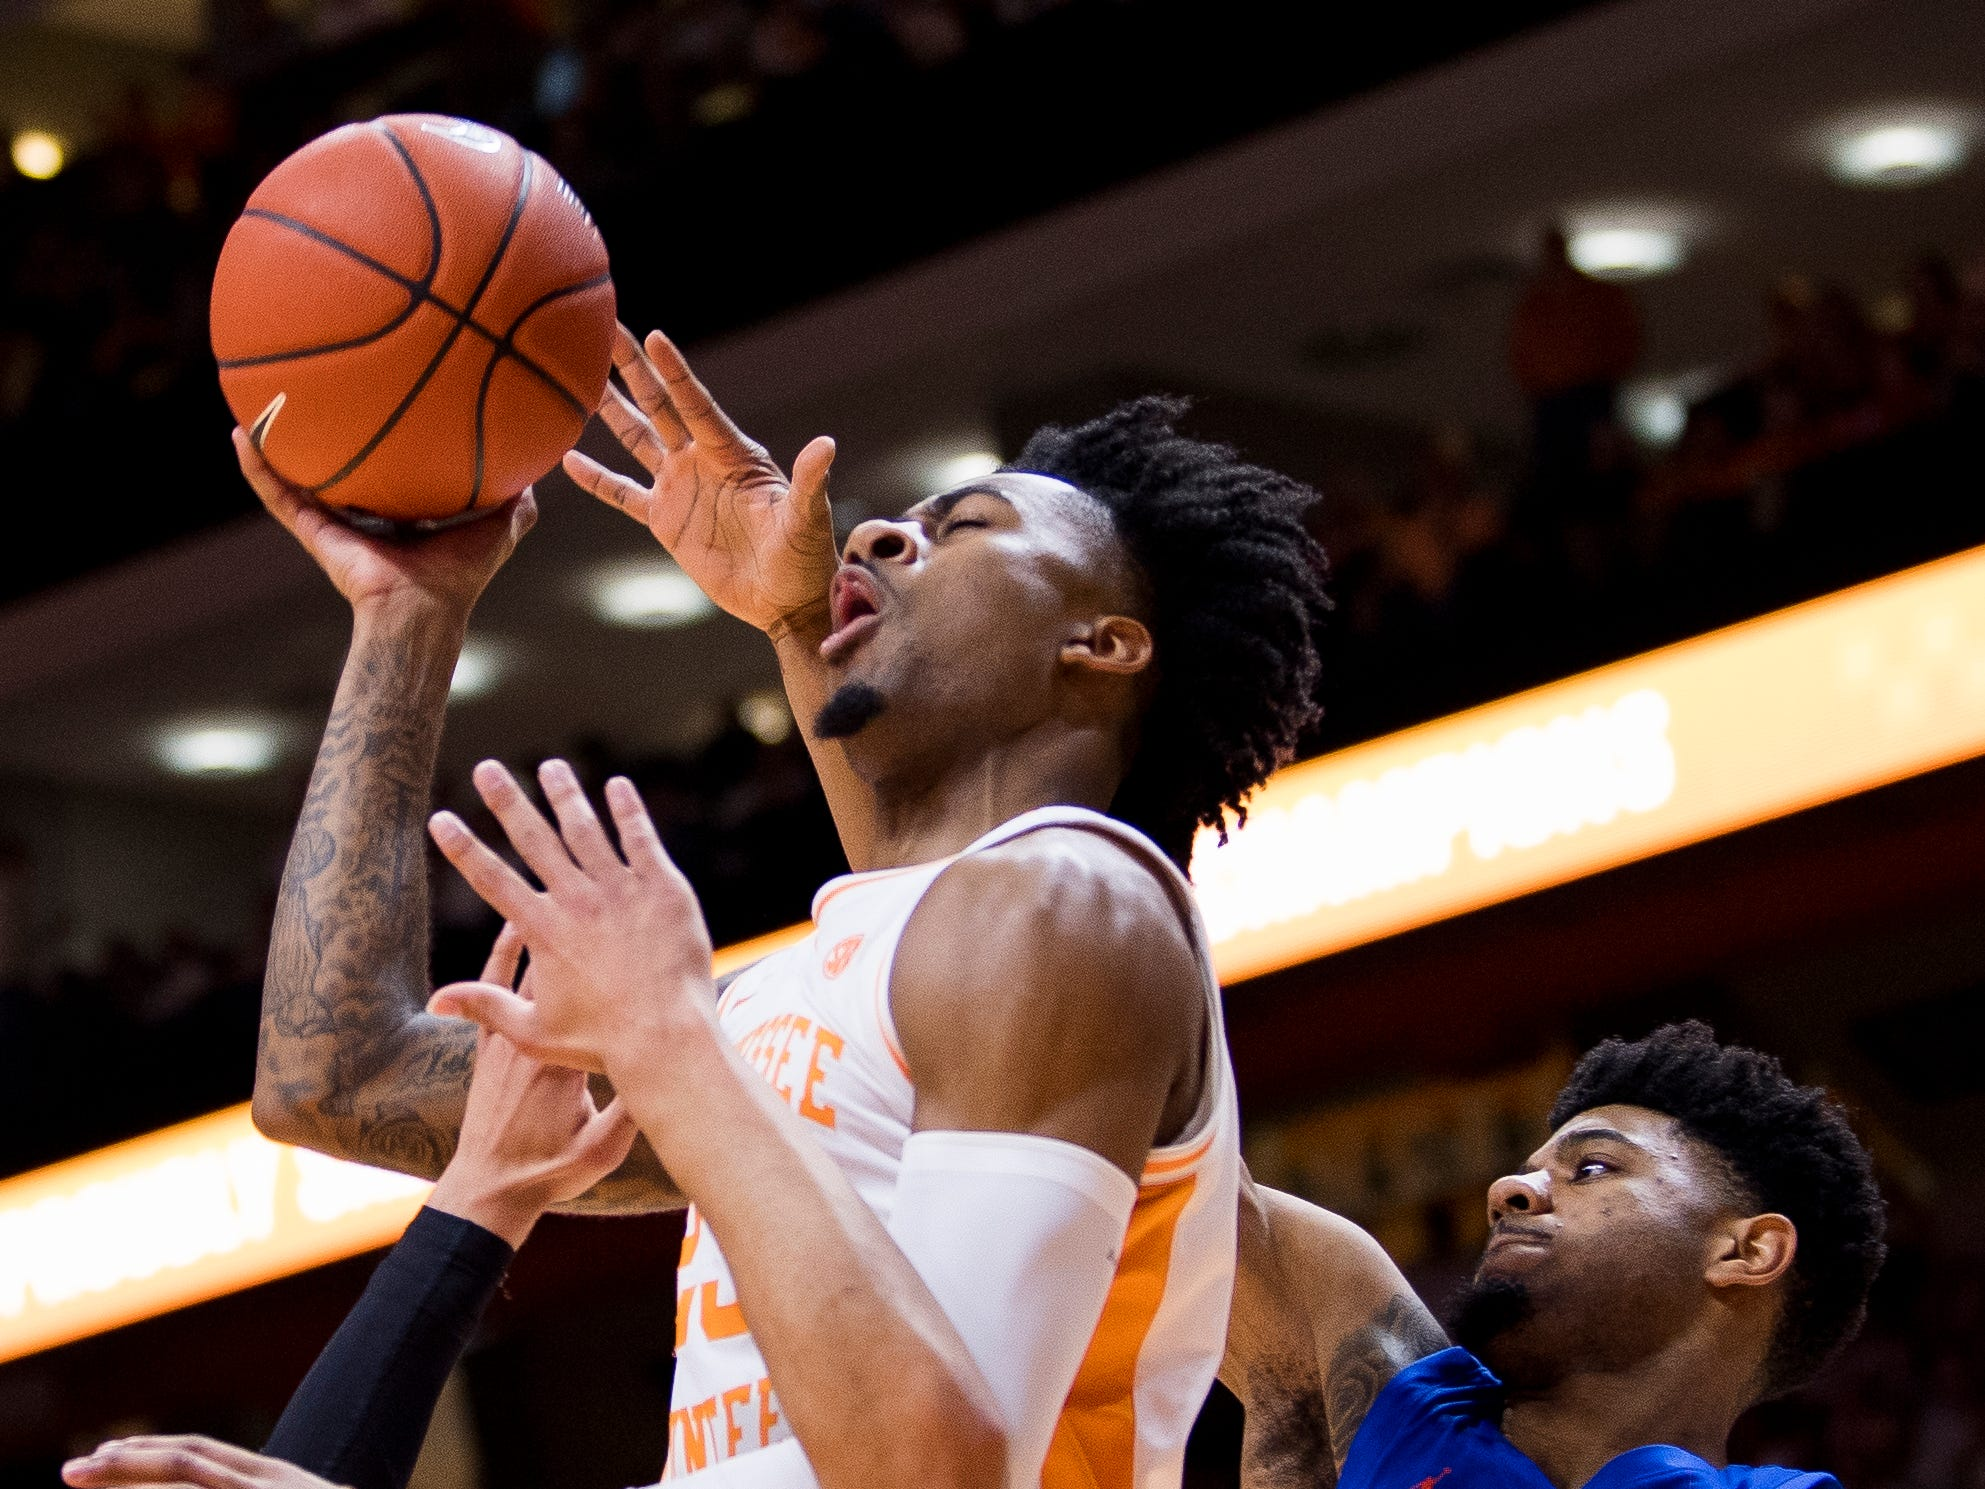 Tennessee guard Jordan Bowden (23) attempts a shot during Tennessee's home SEC conference game against Florida at Thompson-Boling Arena in Knoxville on Saturday, February 9, 2019.